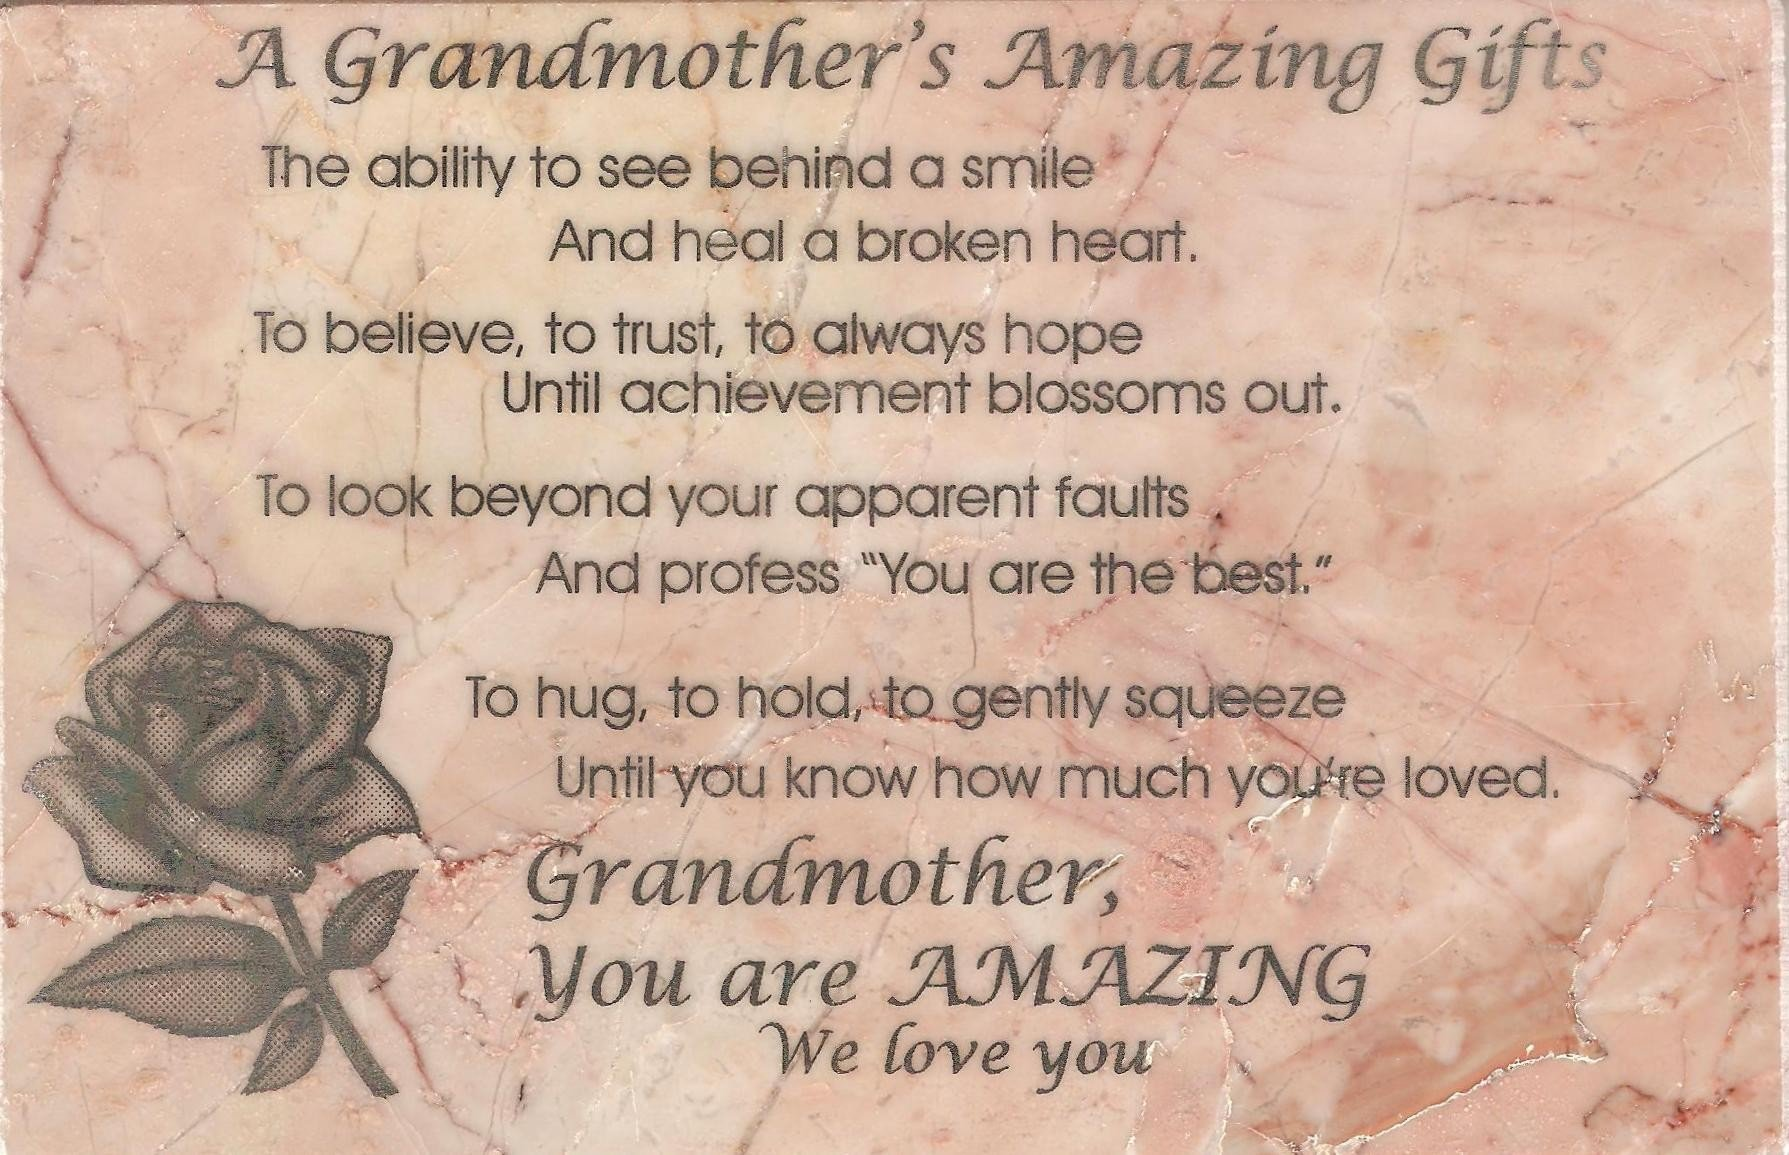 the hardest experience of losing my grandma to cancer How to deal with the death of a grandparent dealing with the death of grandparent may be one of the hardest things you ever have to do it may be doubly hard because it could be your first experience with losing a loved one.